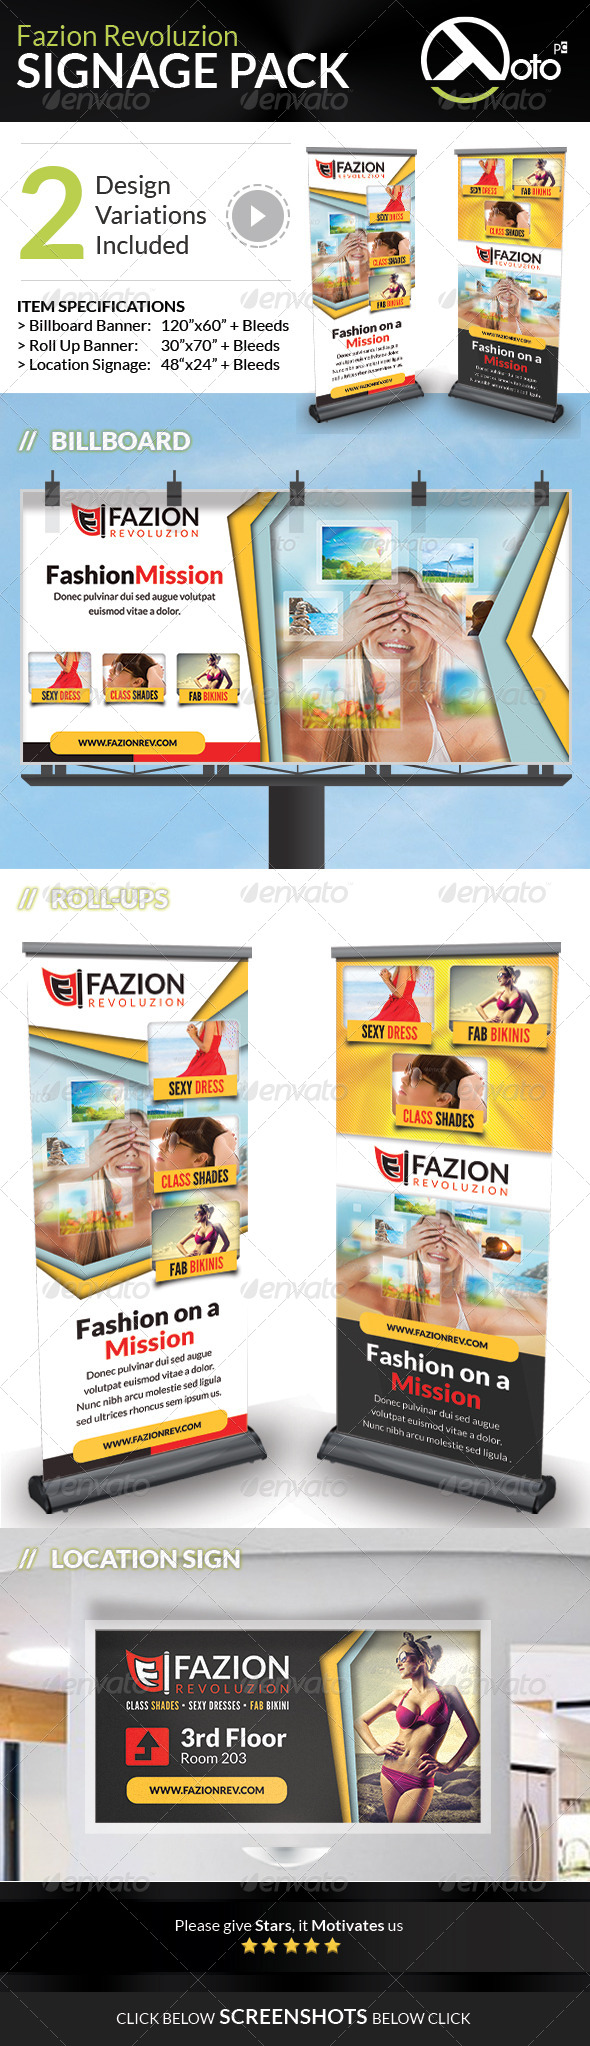 GraphicRiver Fashion Revolution Sale Signage Pack 7550932